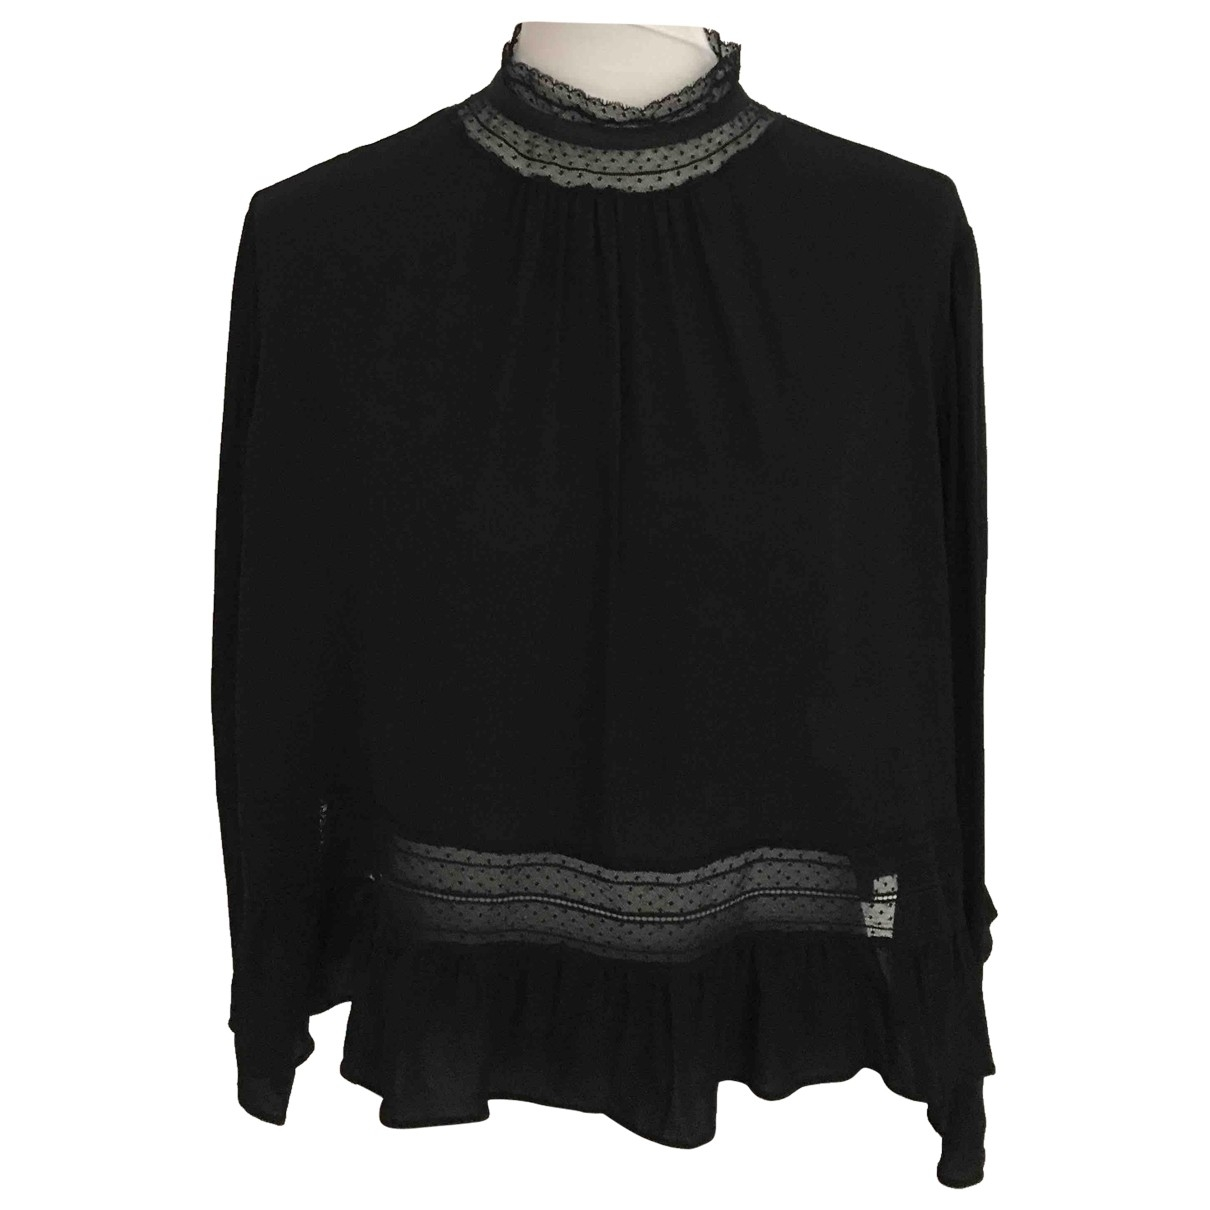 Miu Miu \N Black  top for Women 40 IT